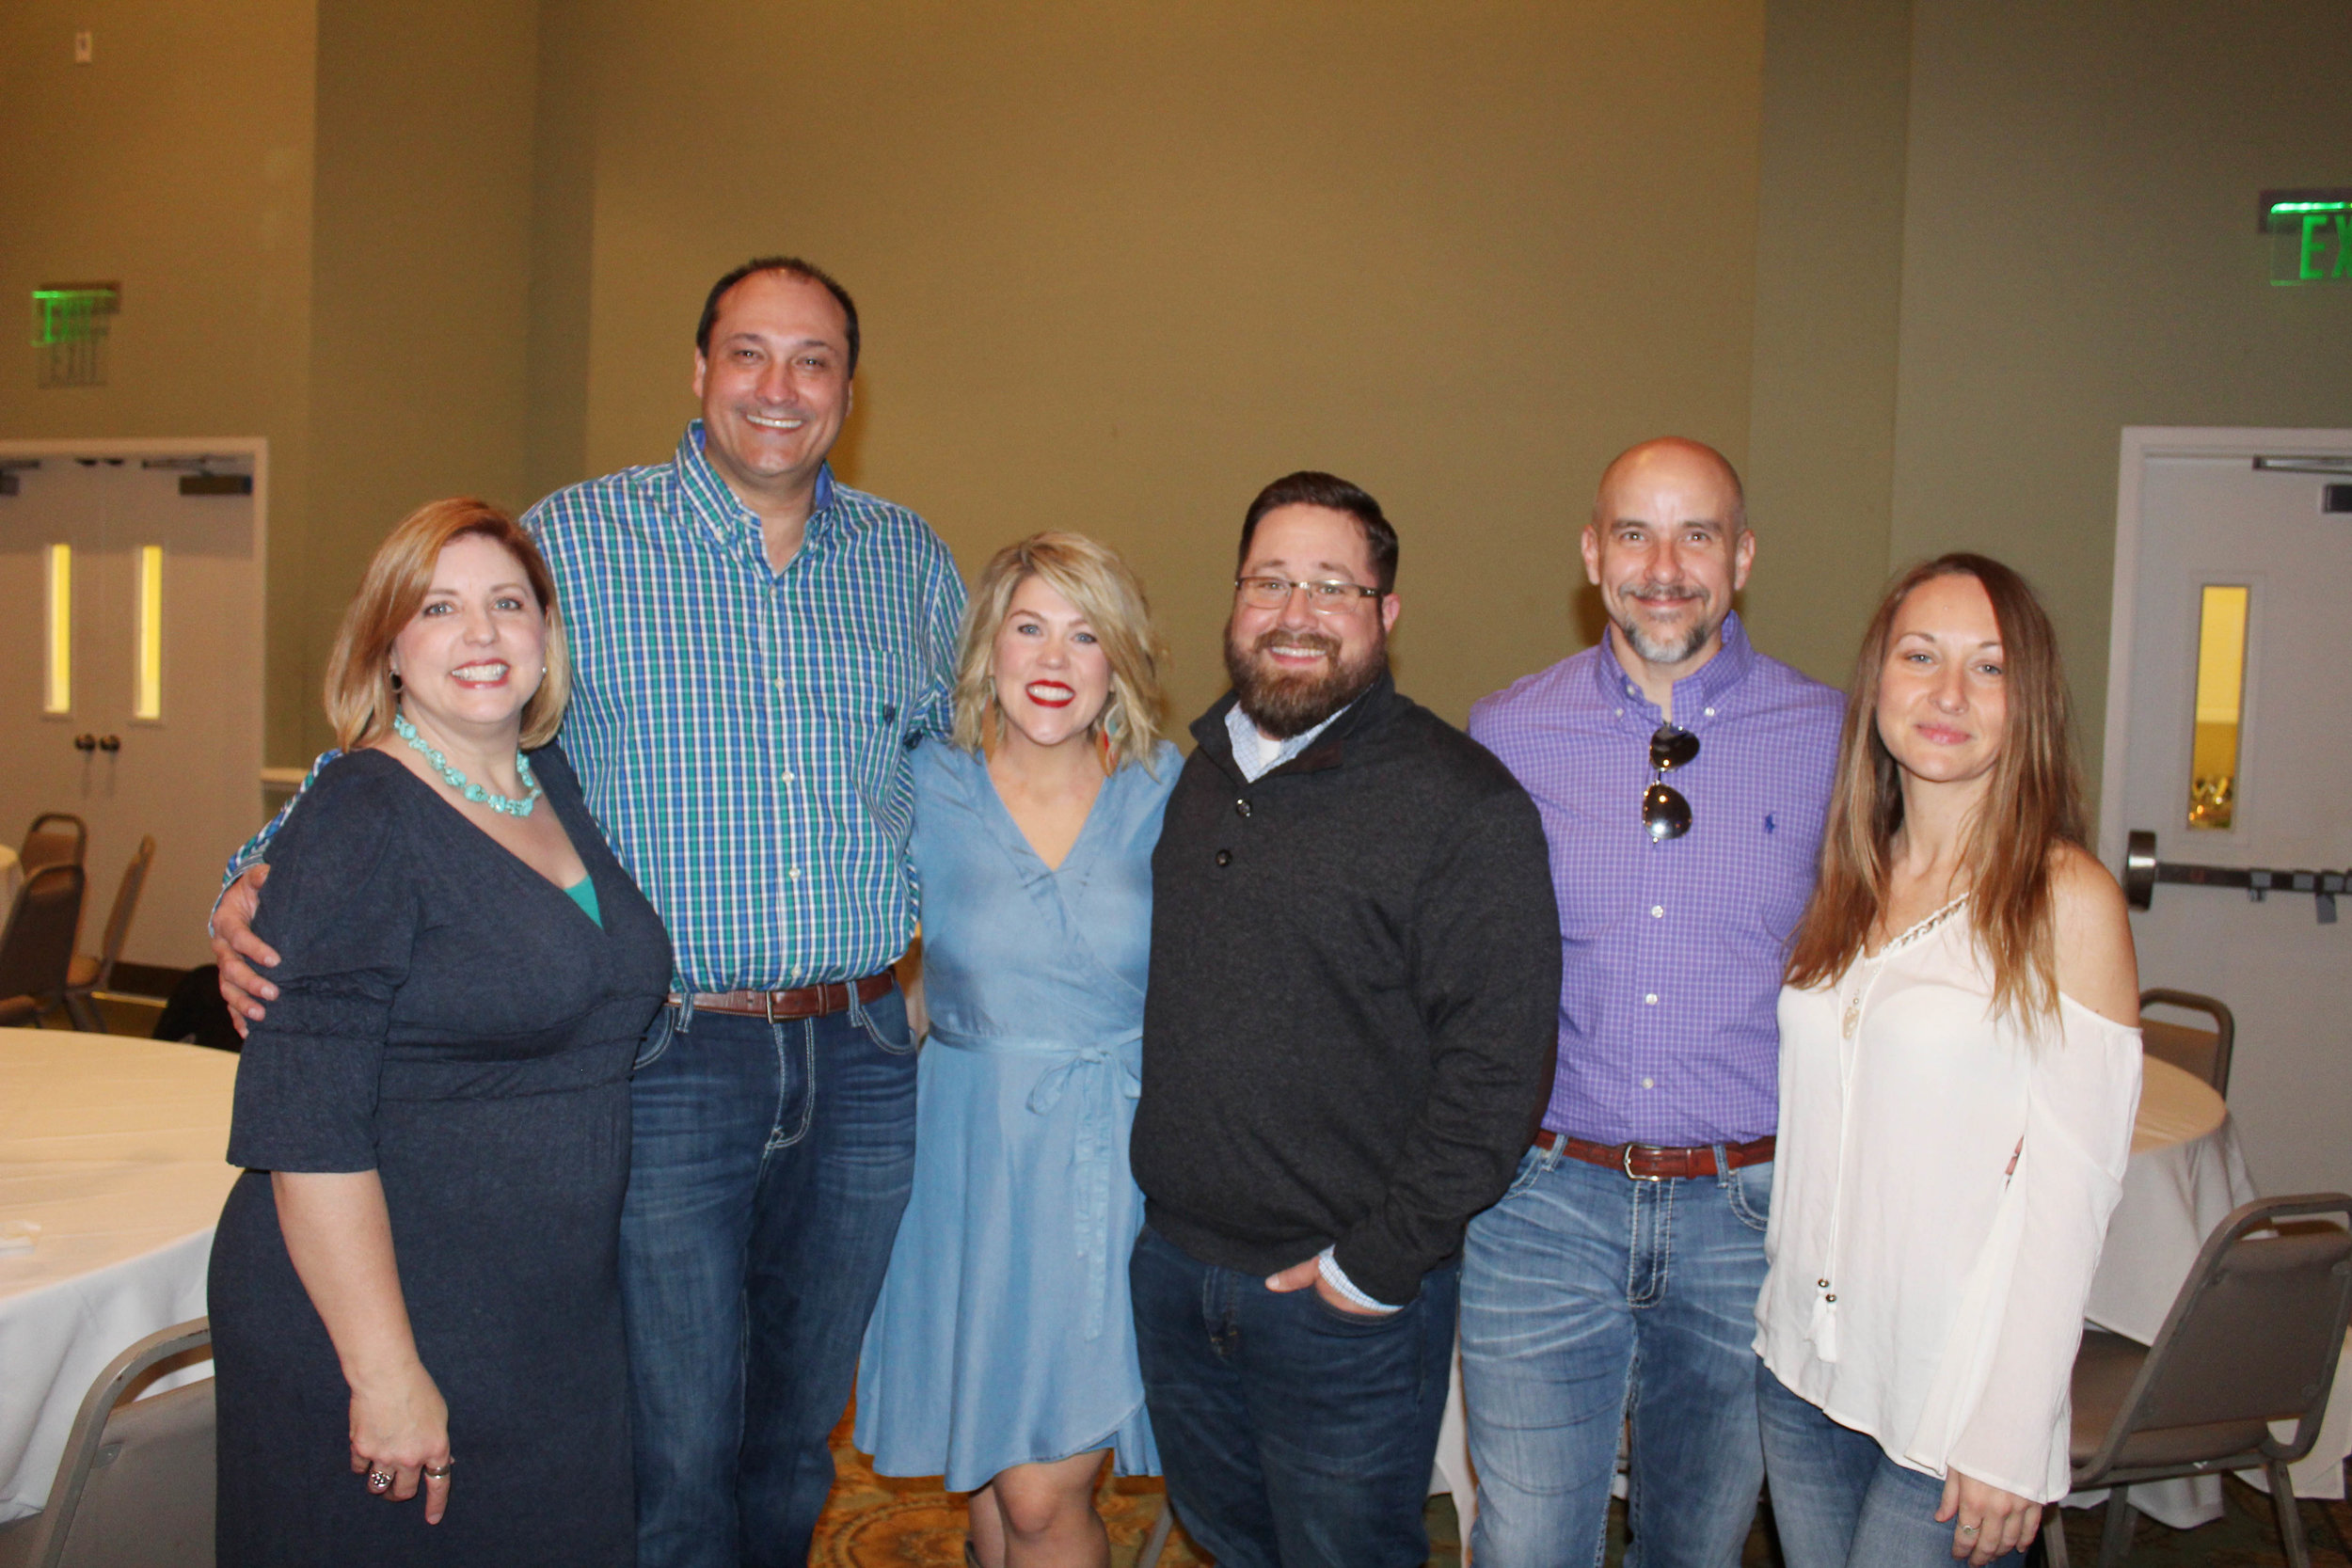 Jodie and Dr. Jason Smith, Brandy and Billy Eldridge and Randy Thomason and Brittany Carter